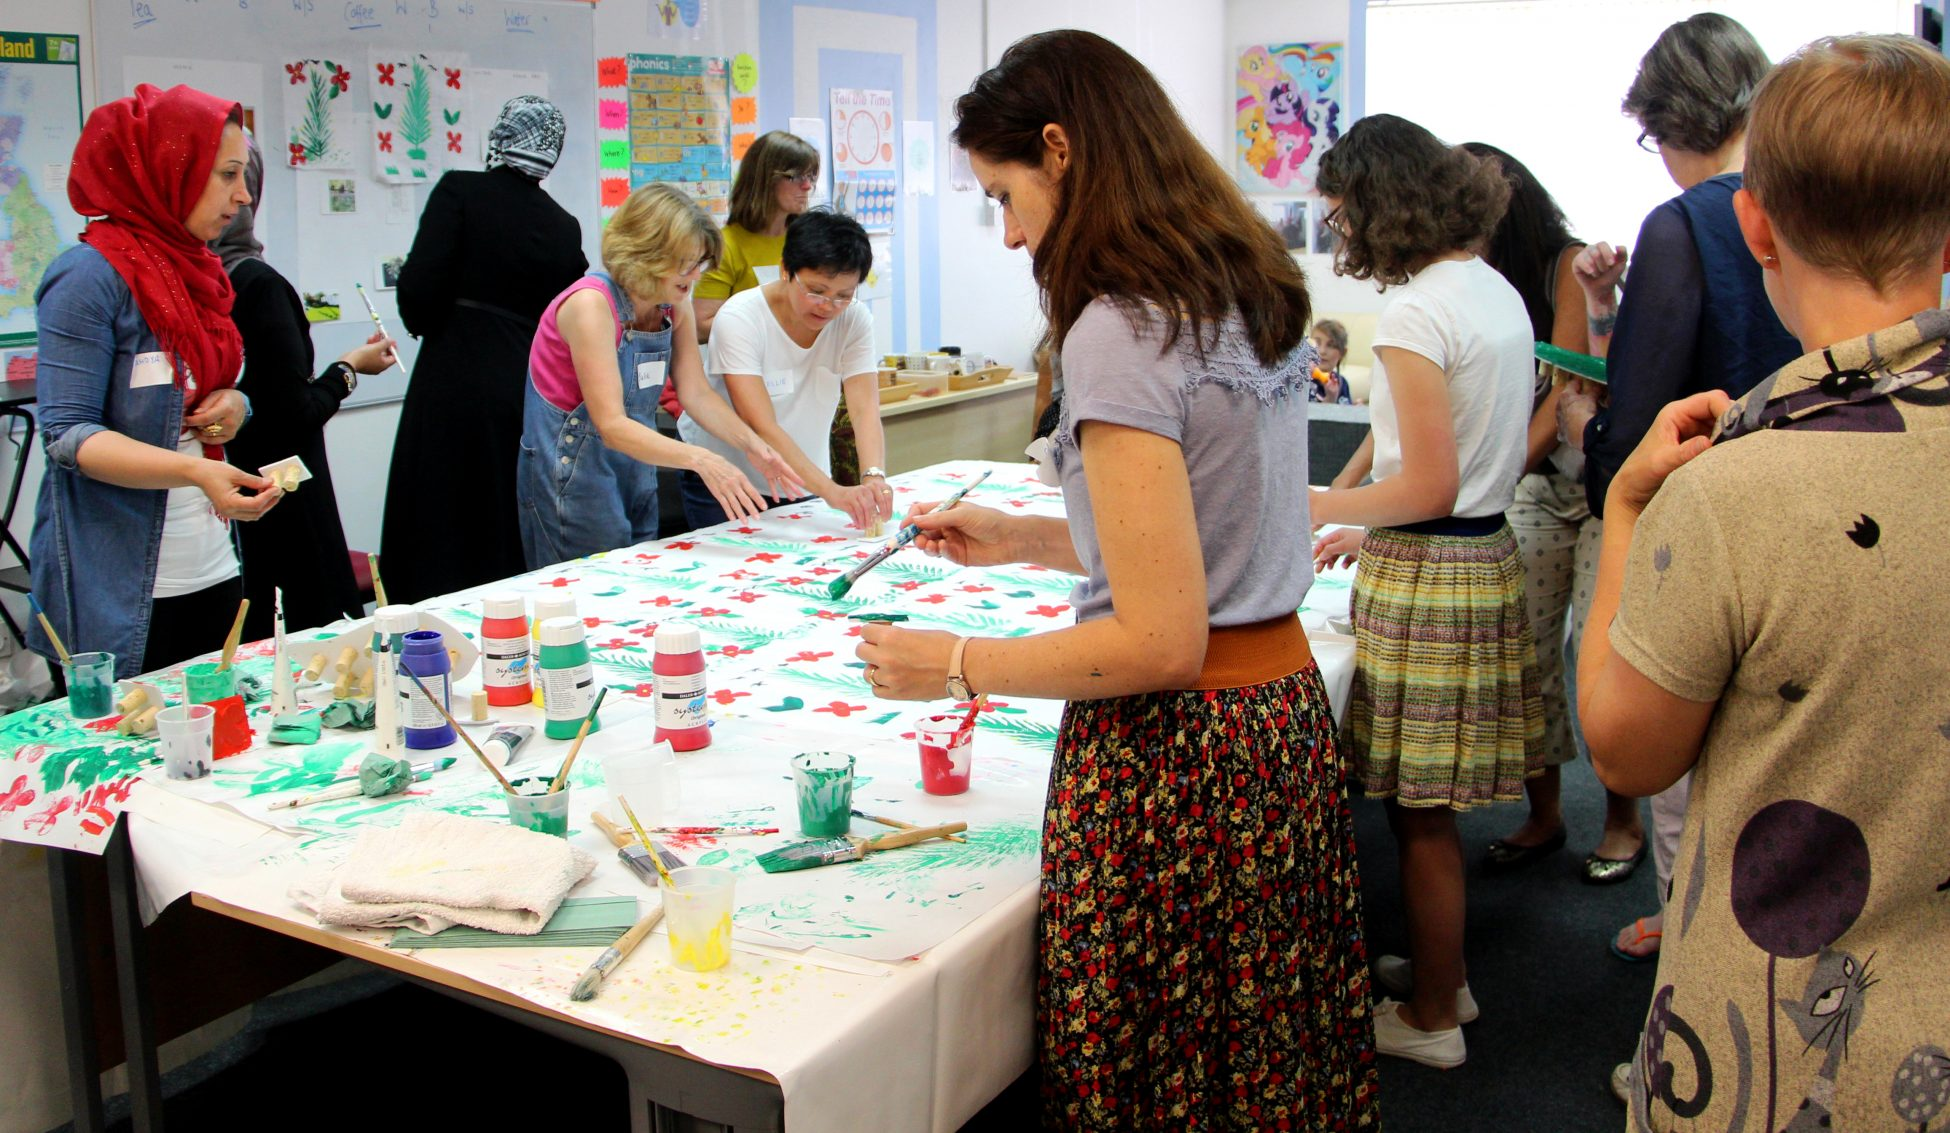 Photo of a group of about a dozen women grouped around a large table covered in white fabric. The women are painting designs onto the fabric.